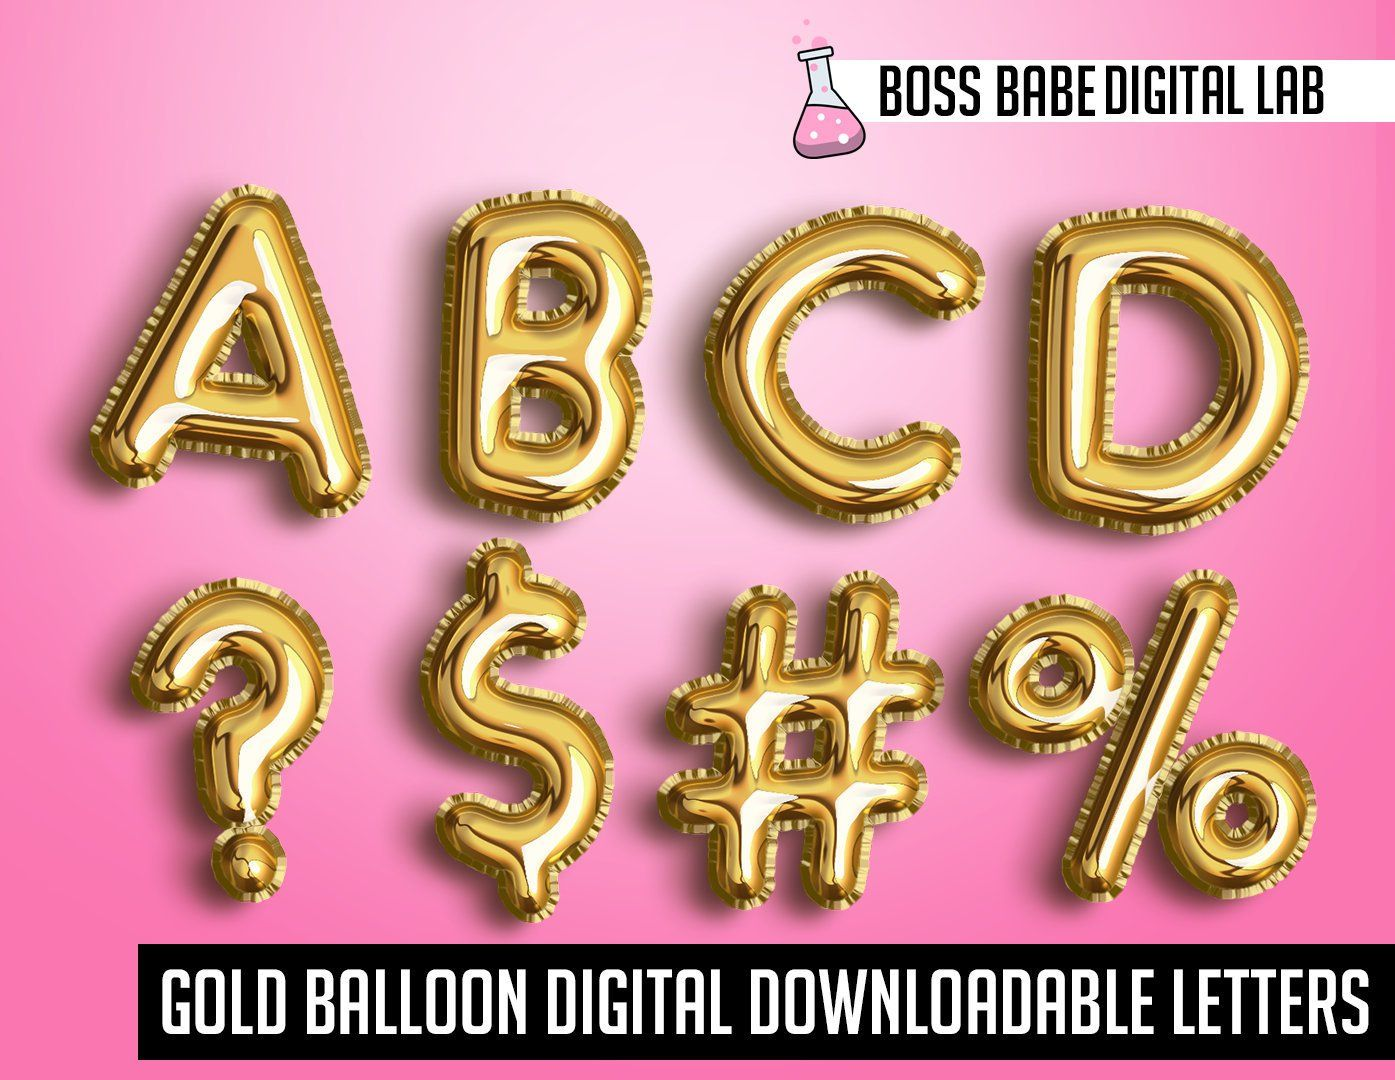 Gold Foil Balloon Alphabet Clipart Commercial Use Gold Letters Gold Foil Gold Party Gold Digital Designs Gold Foil Balloons For Flyers Gold Foil Balloons Foil Balloons Balloons